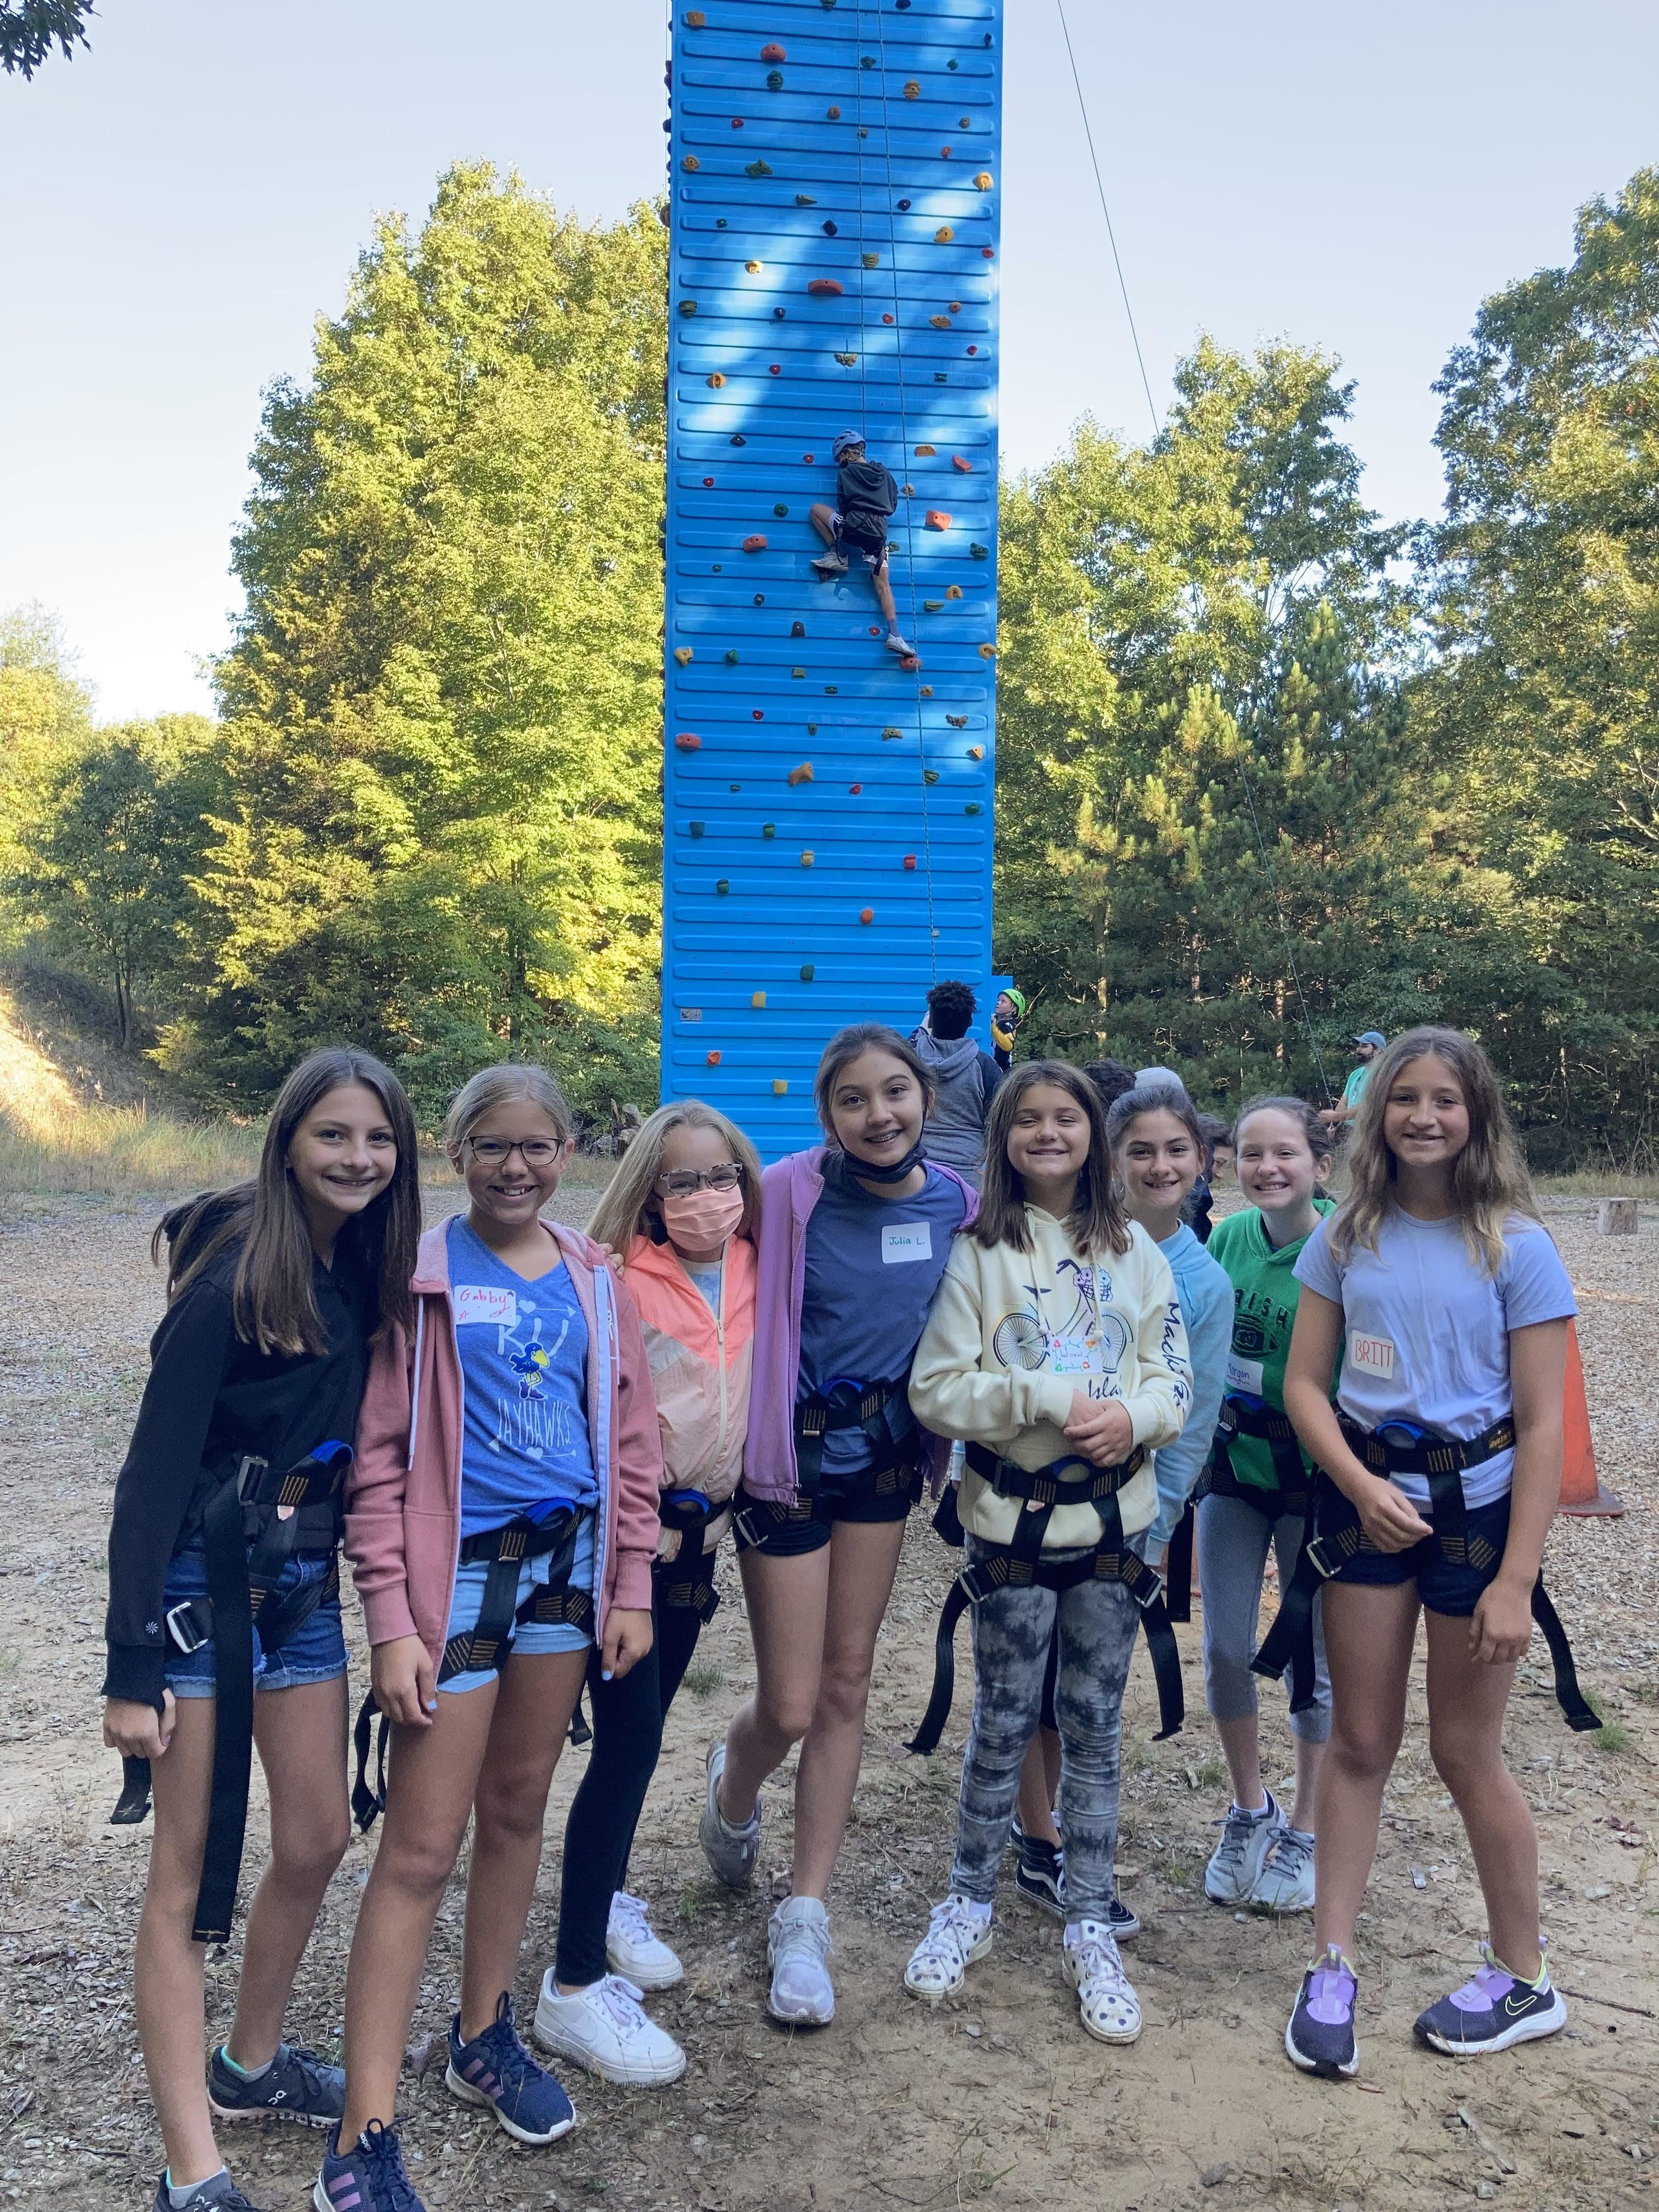 Sixth Graders Connect at Camp Blodgett Thanks to Foundation Grant